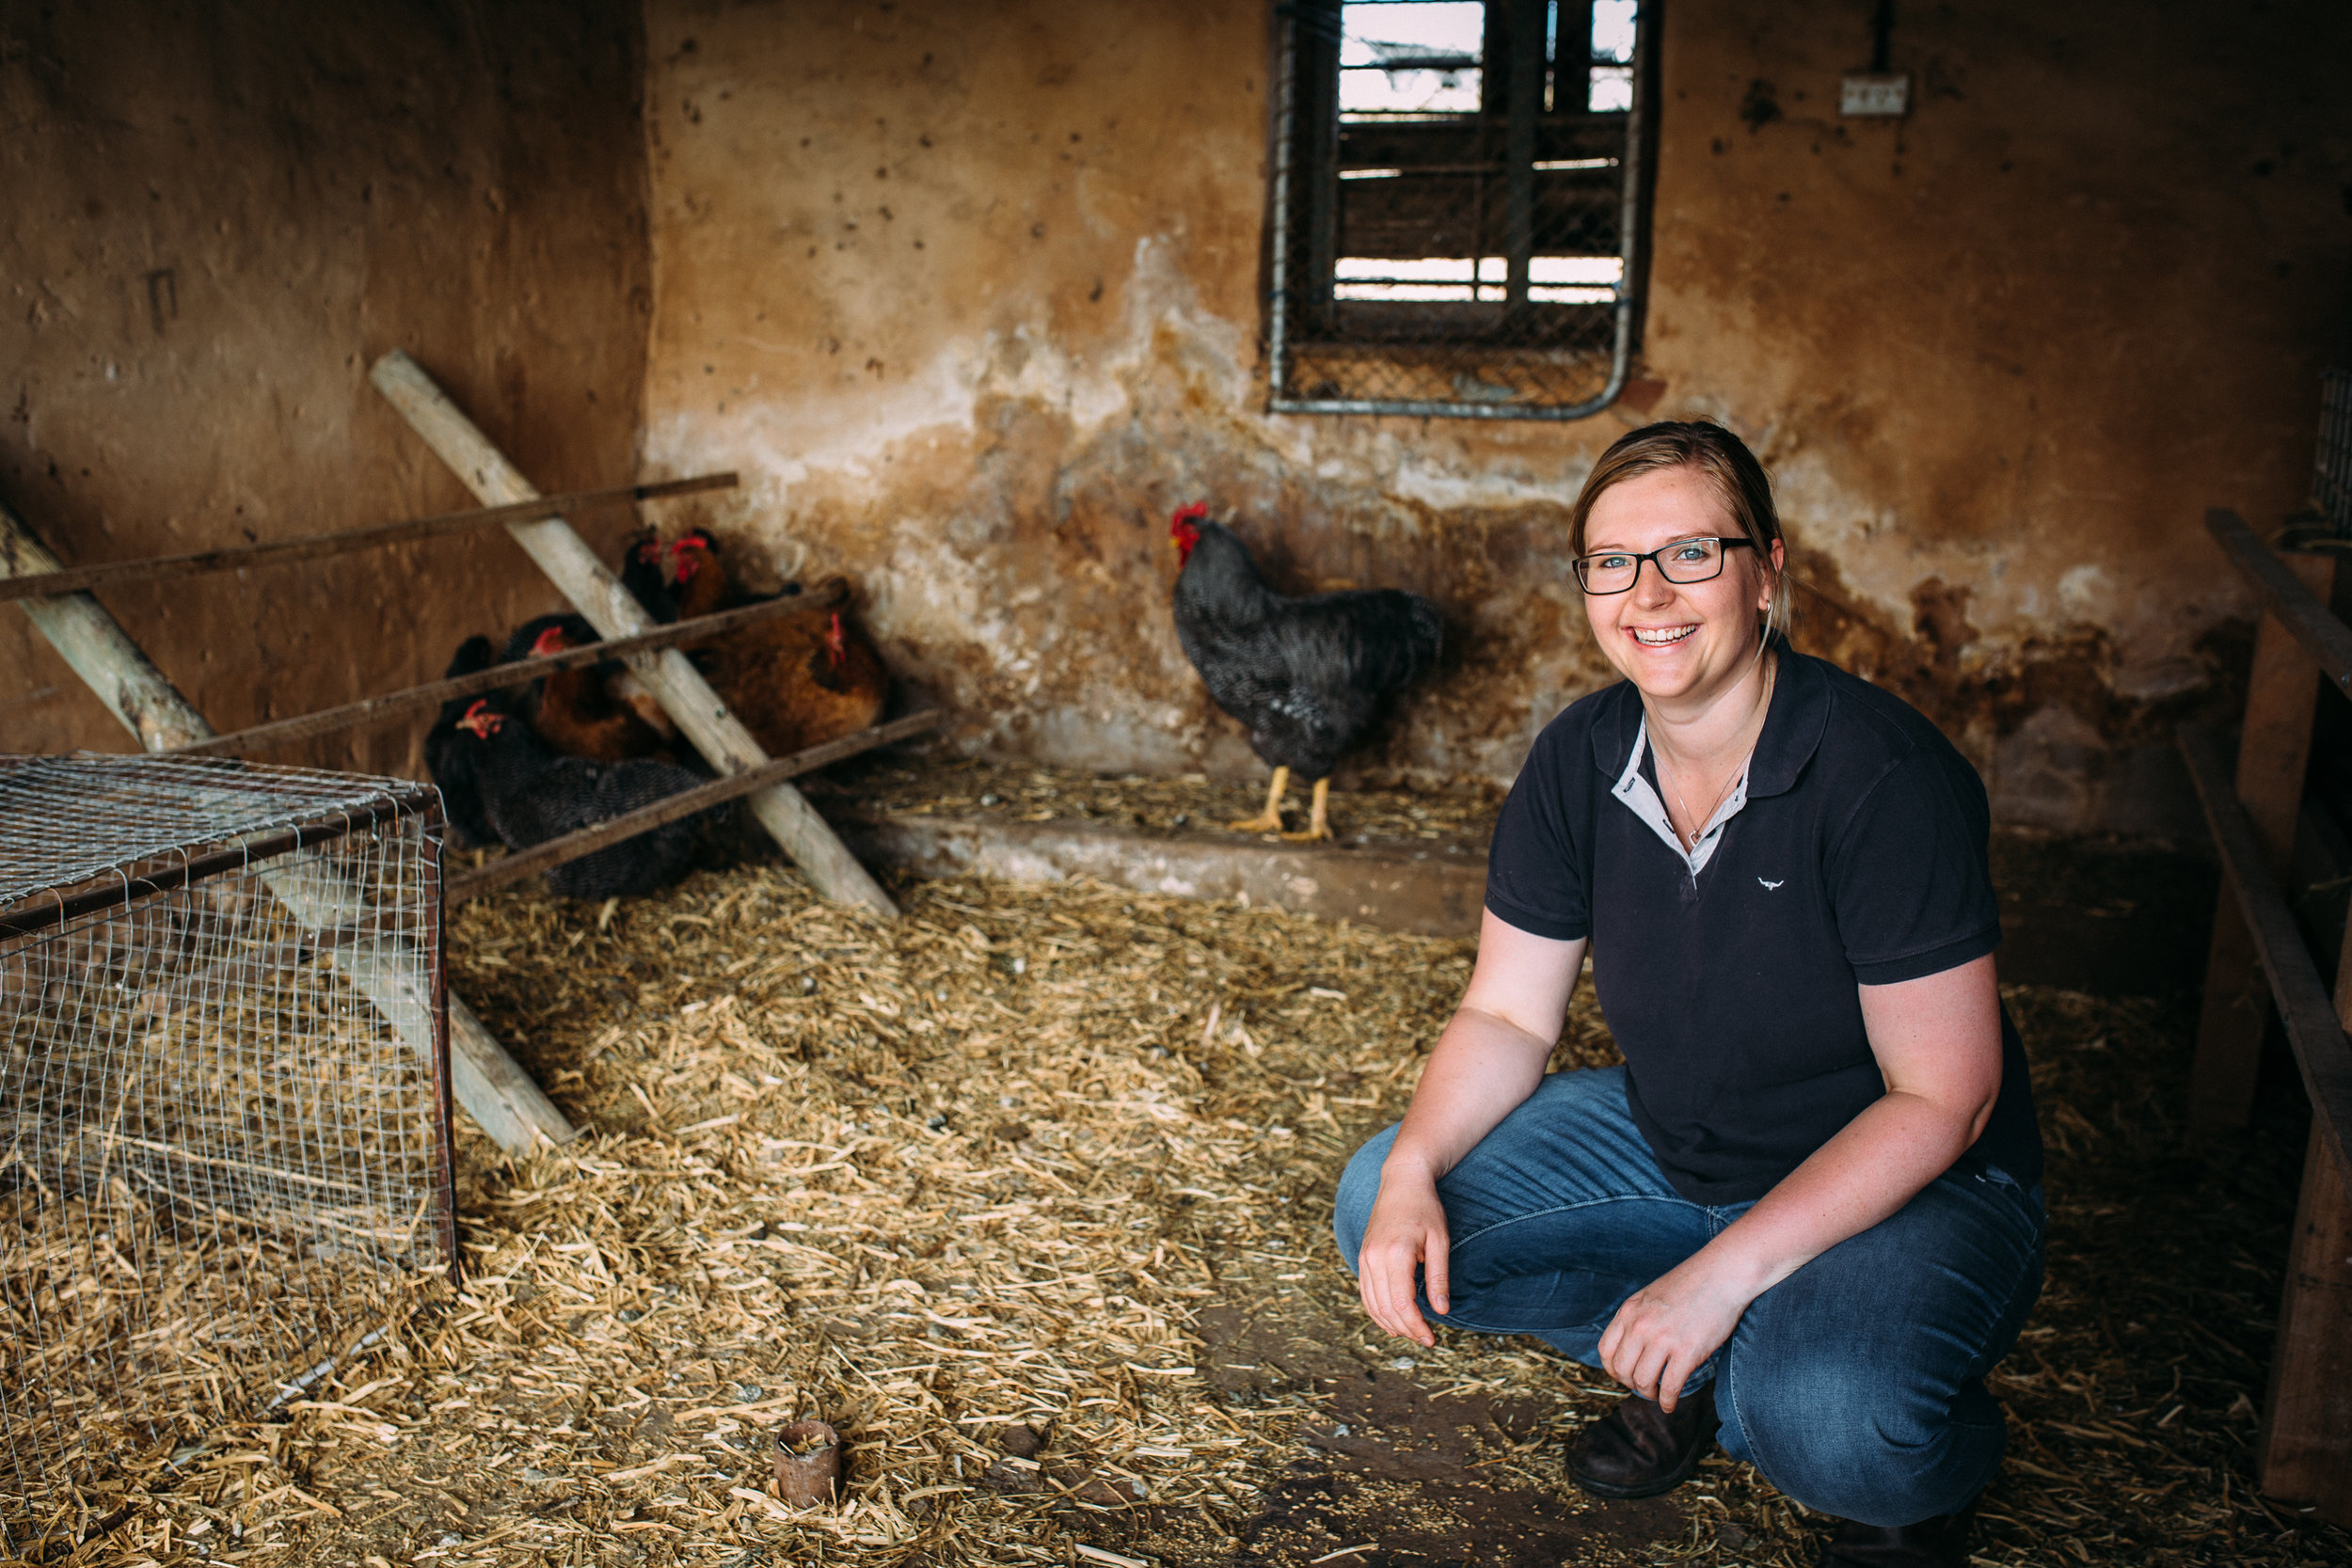 Emily Mueller feeding the chooks, Murray Bridge, South Australia, photographed by Catherine Forge, Source: Museums Victoria: https://collections.museumvictoria.com.au/items/2243781